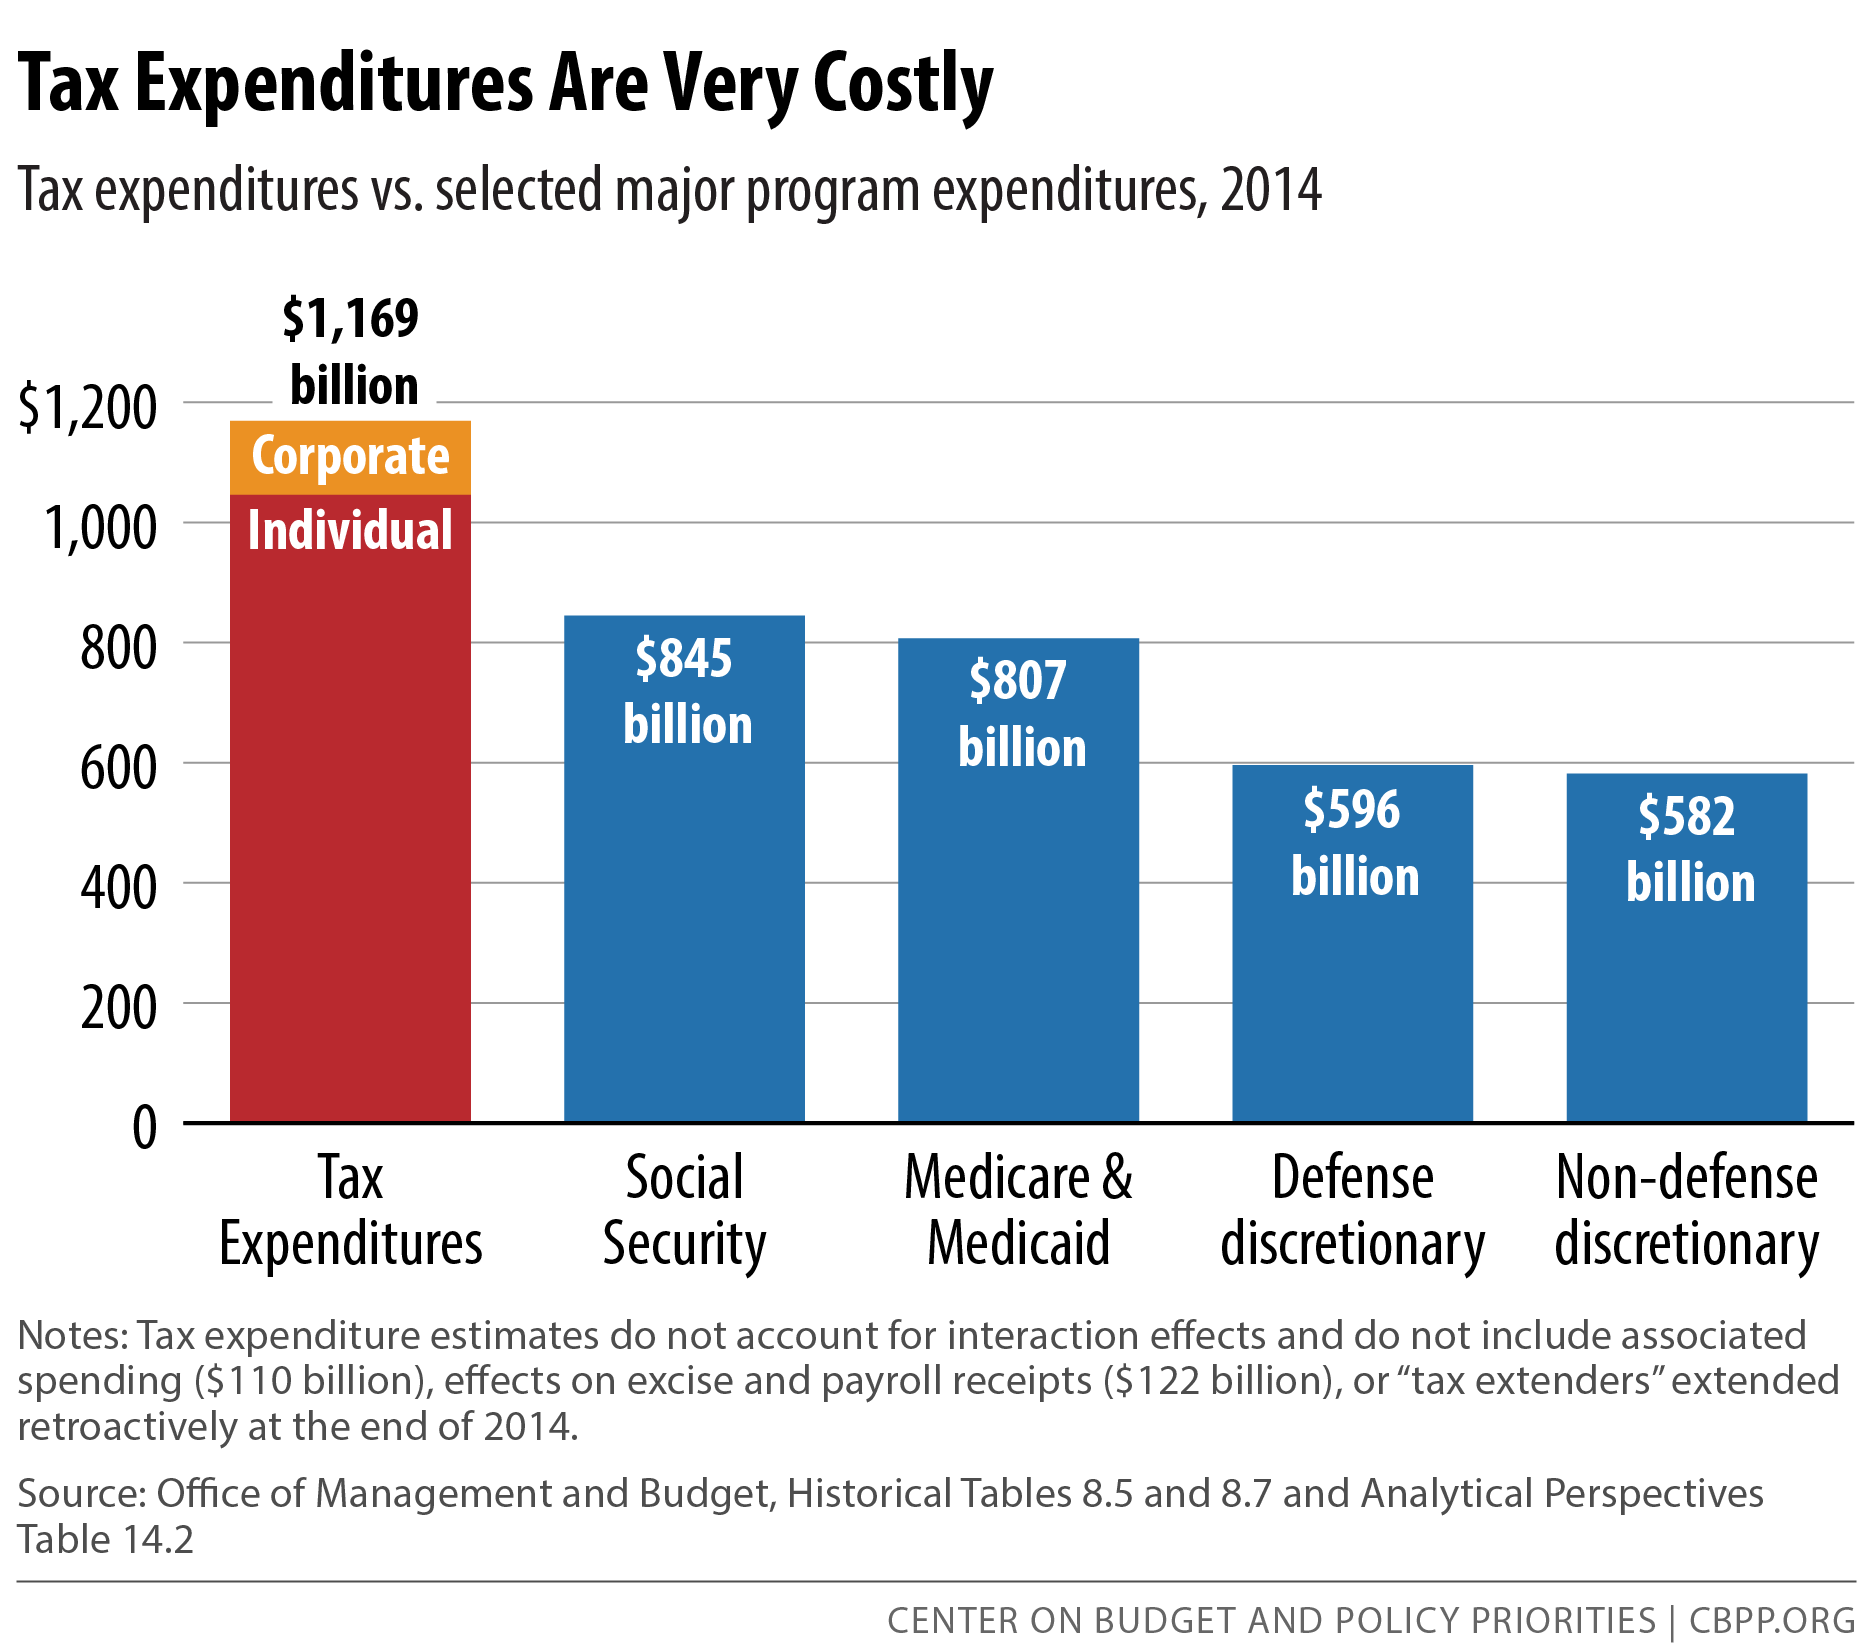 Tax Expenditures Are Very Costly